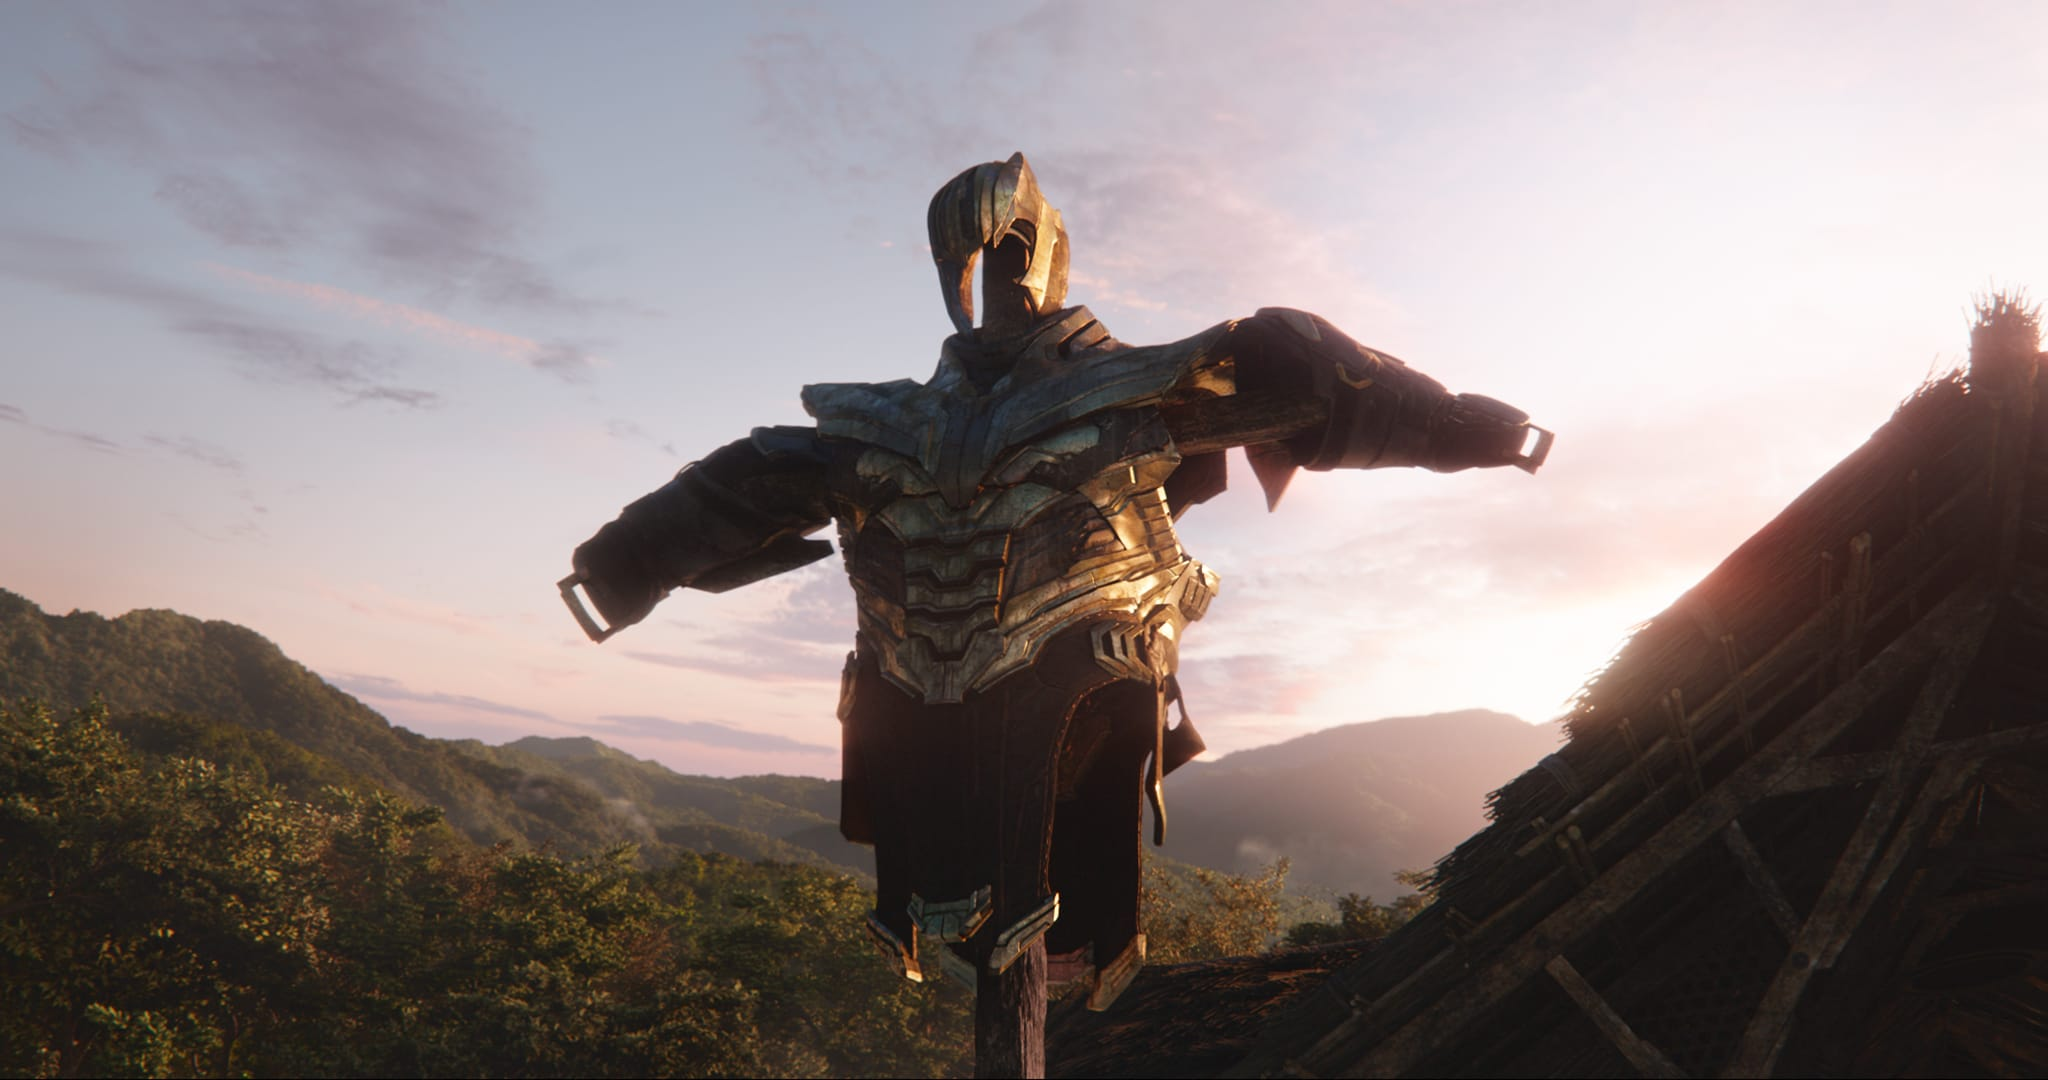 Avengers: Endgame on Digital now and on Blu-ray, DVD, and 4K on August 13!